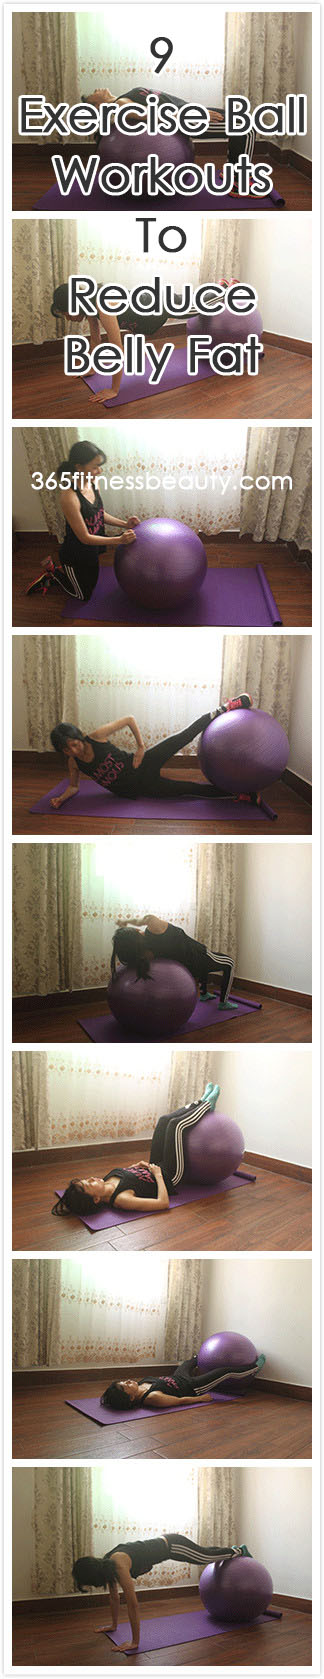 9-exercise-ball-workouts-to-reduce-belly-fat-at-home-share